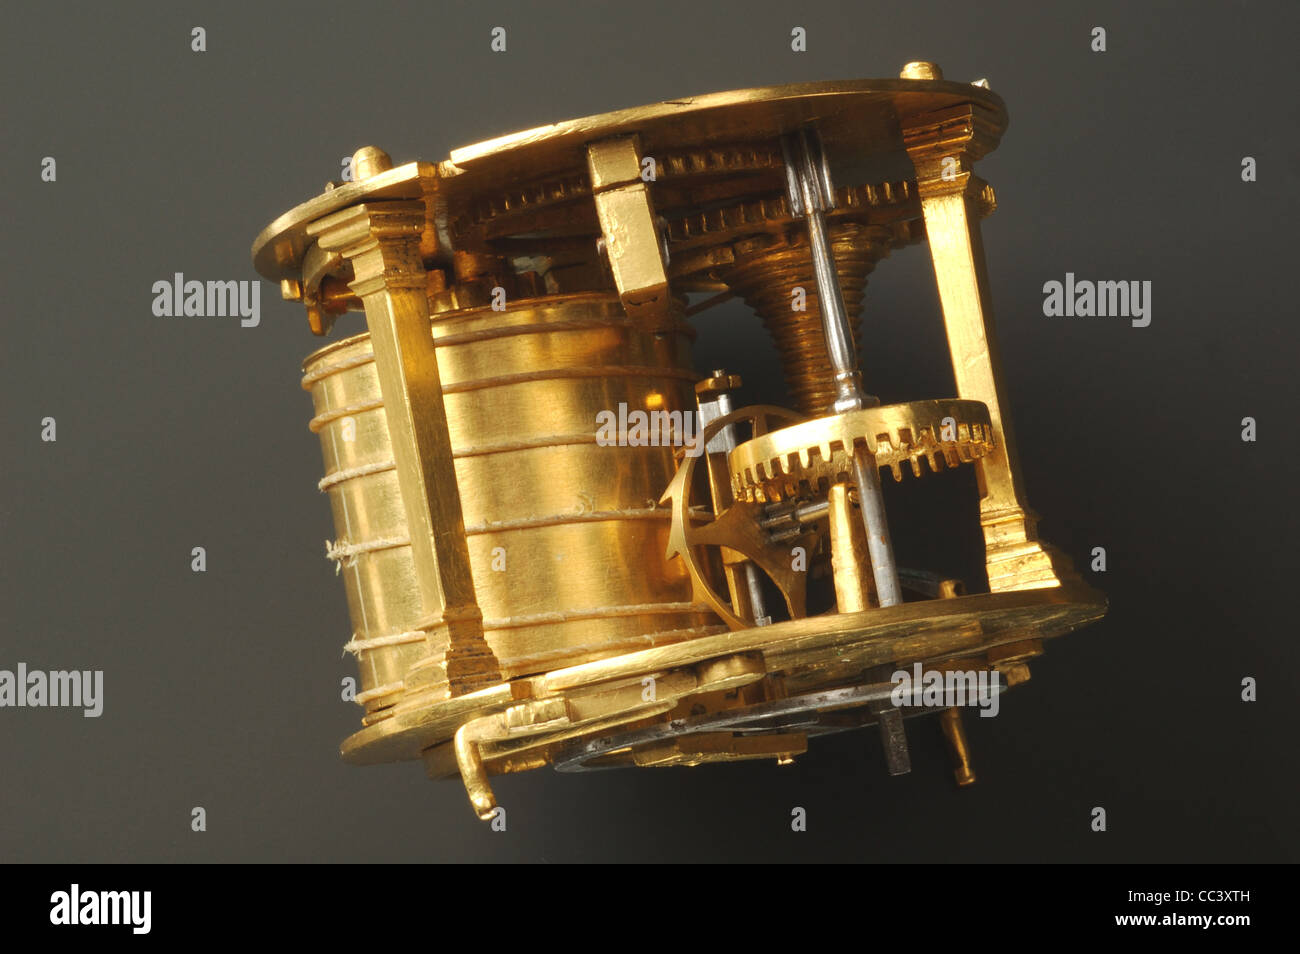 Watches Sixteenth Century. atch Drummer Brass Dated 1558 - Stock Image